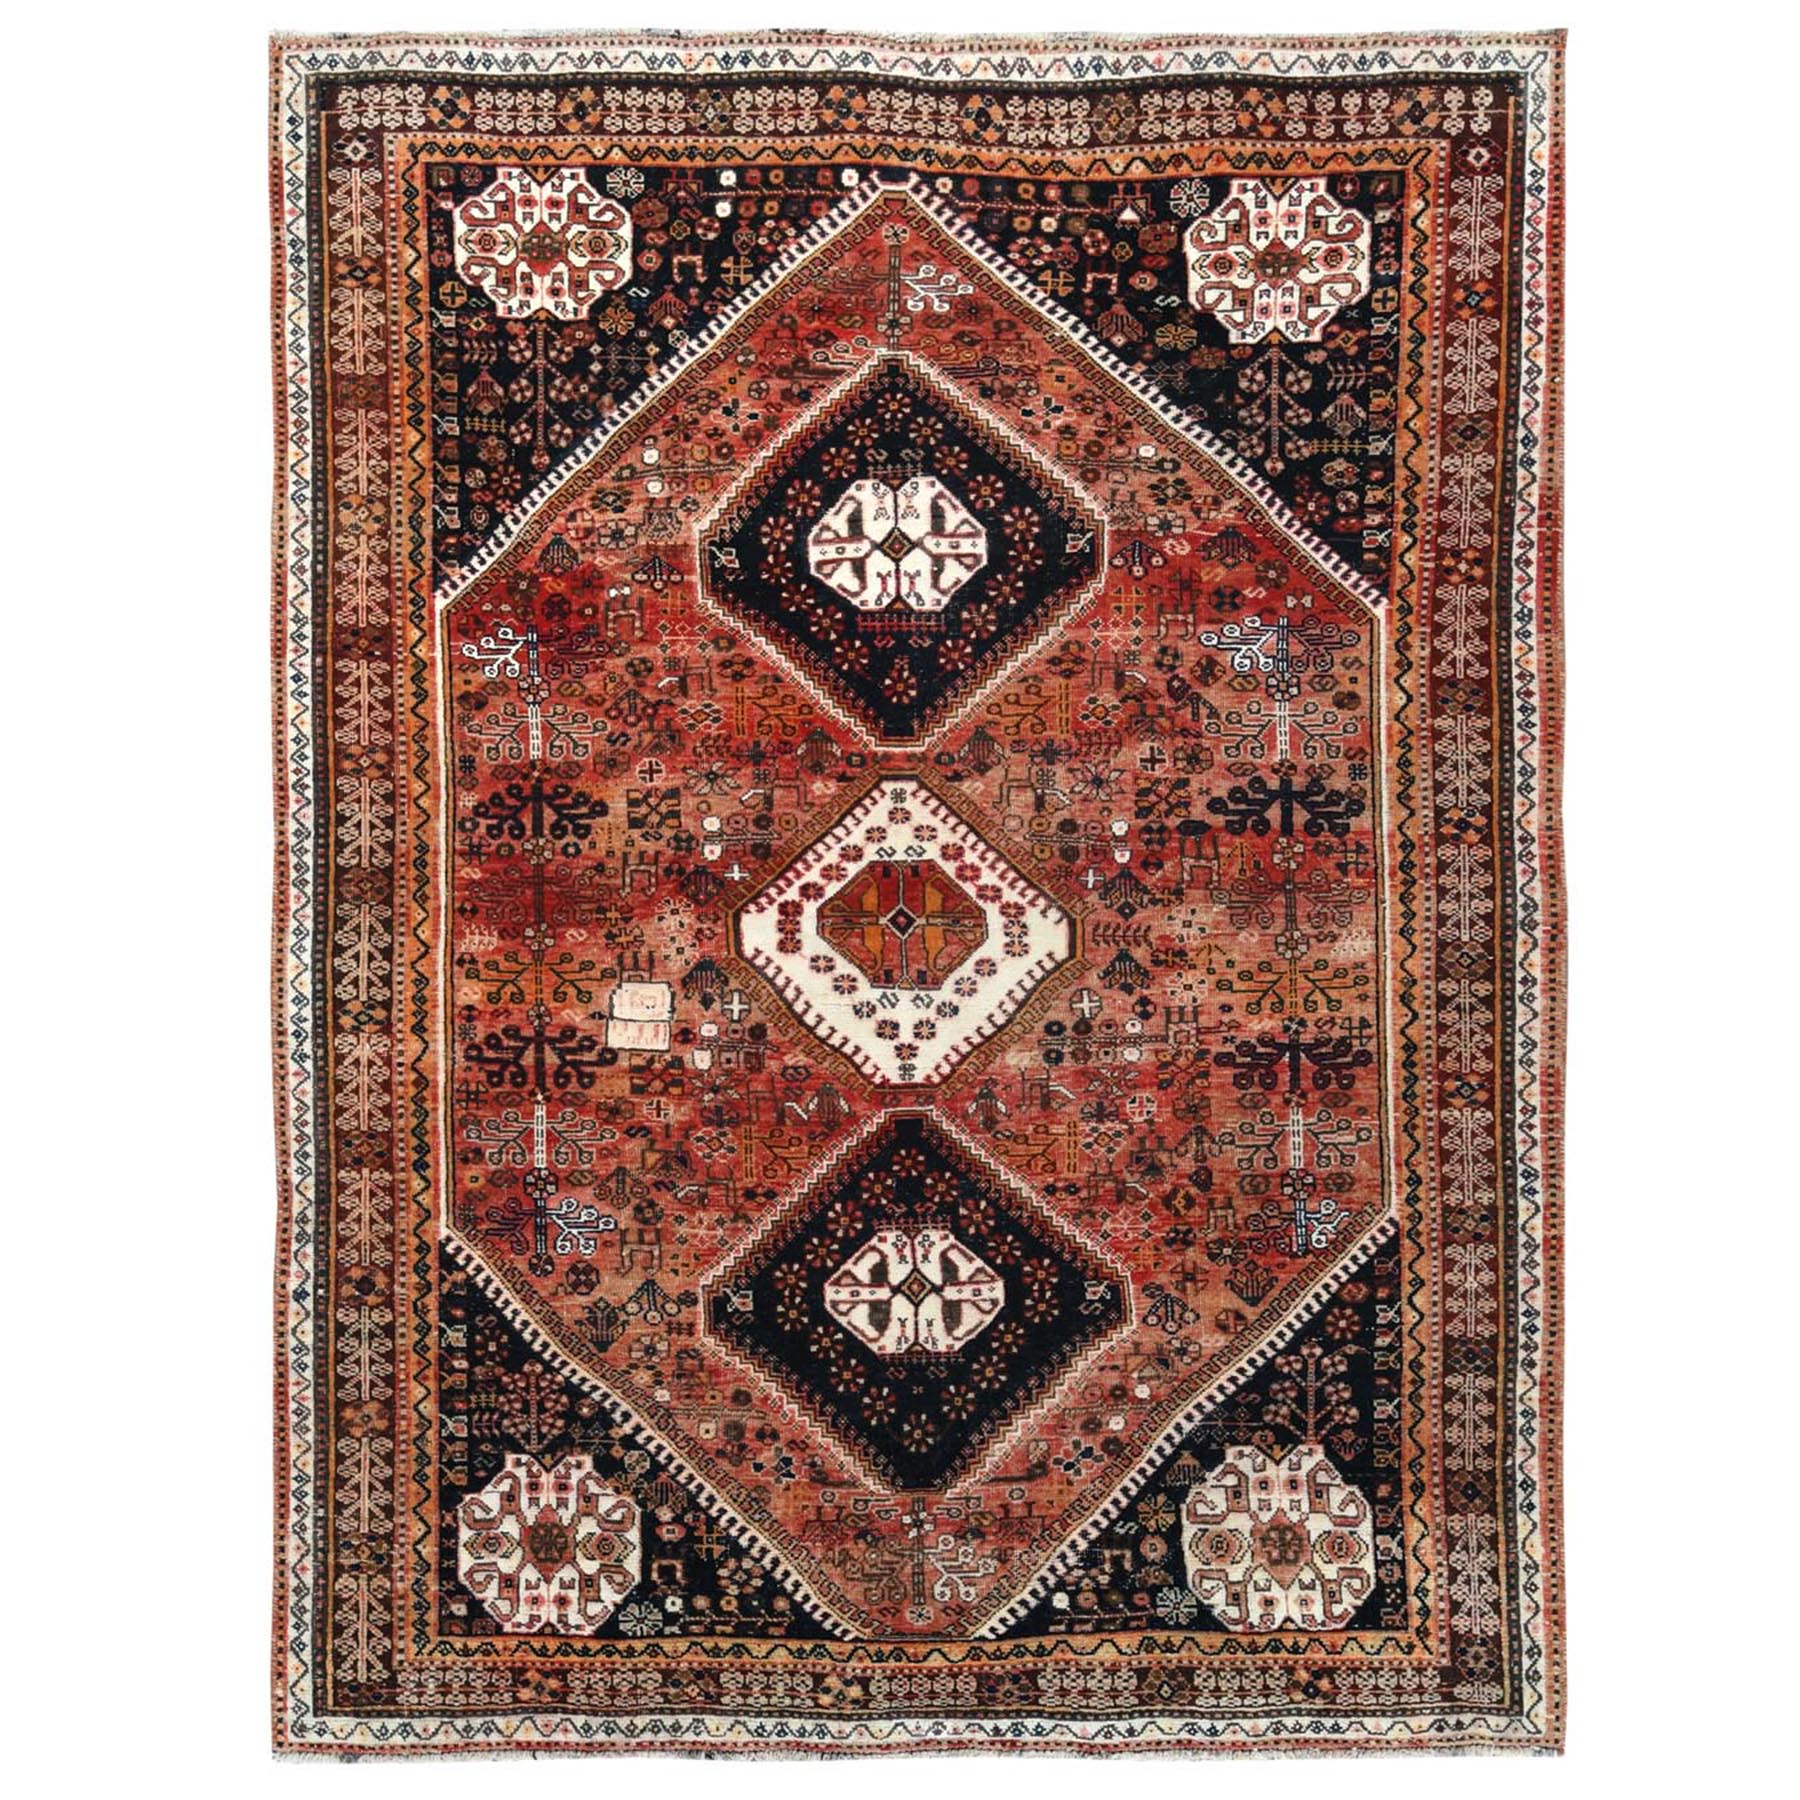 "5'6""x7'4"" Vintage and Worn Down Persian Qashqai with Sunset Colors Geometric Design Hand Knotted Clean Oriental Rug"